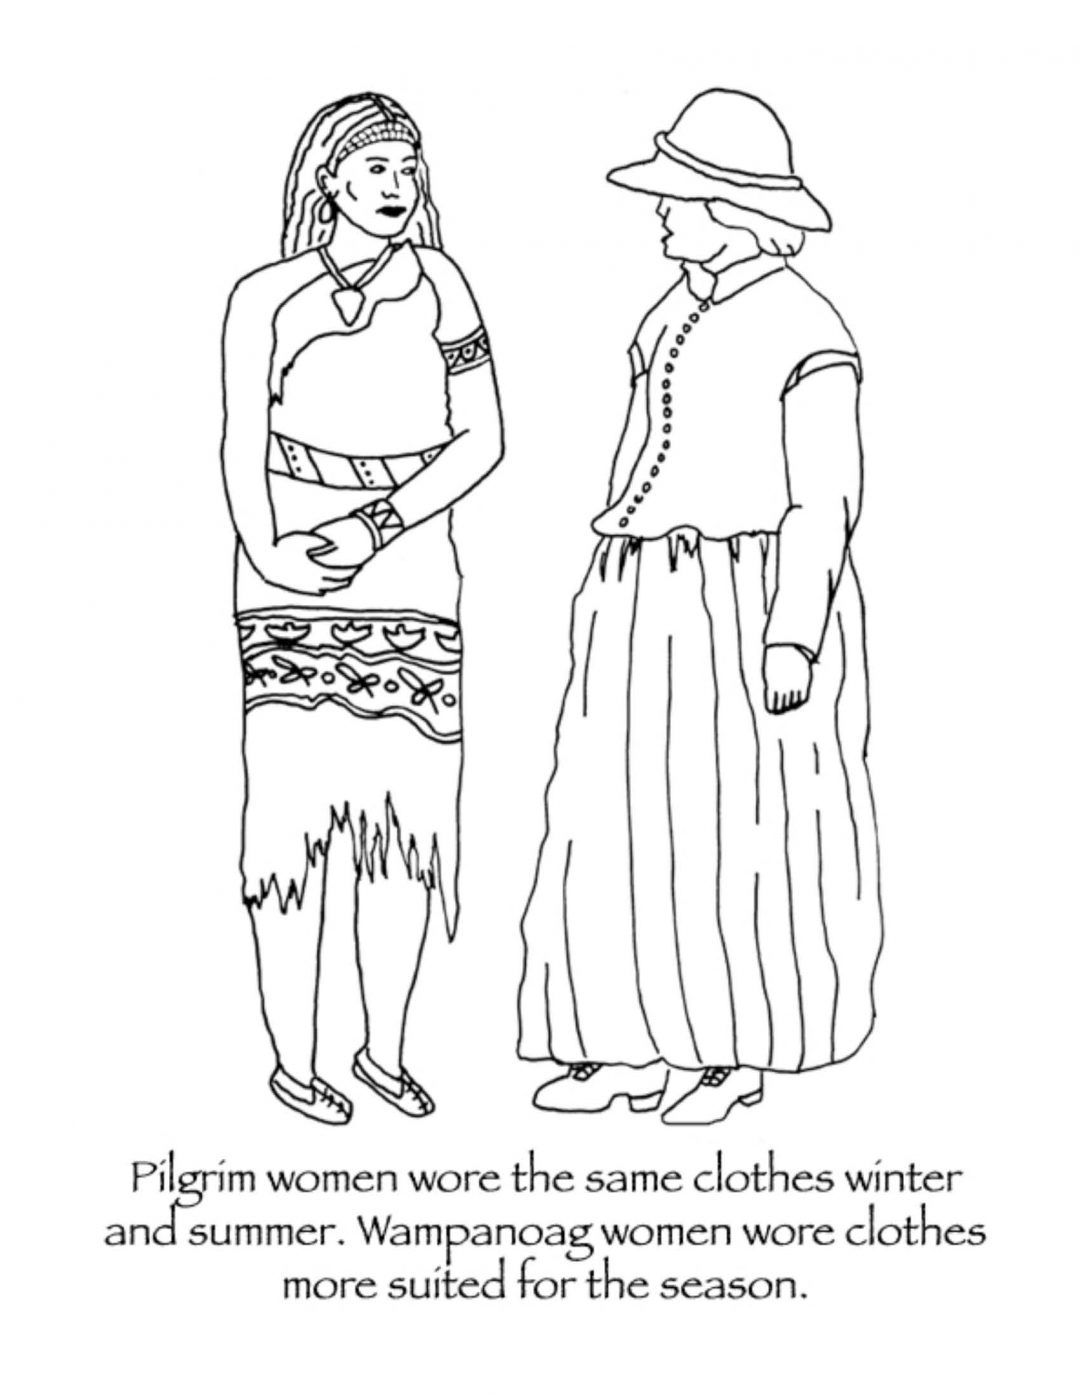 A Collection Of Culturally And Historically Accurate Thanksgiving Coloring Pages For Children Thanksgiving Coloring Pages Pilgrim Clothing Free Thanksgiving Coloring Pages